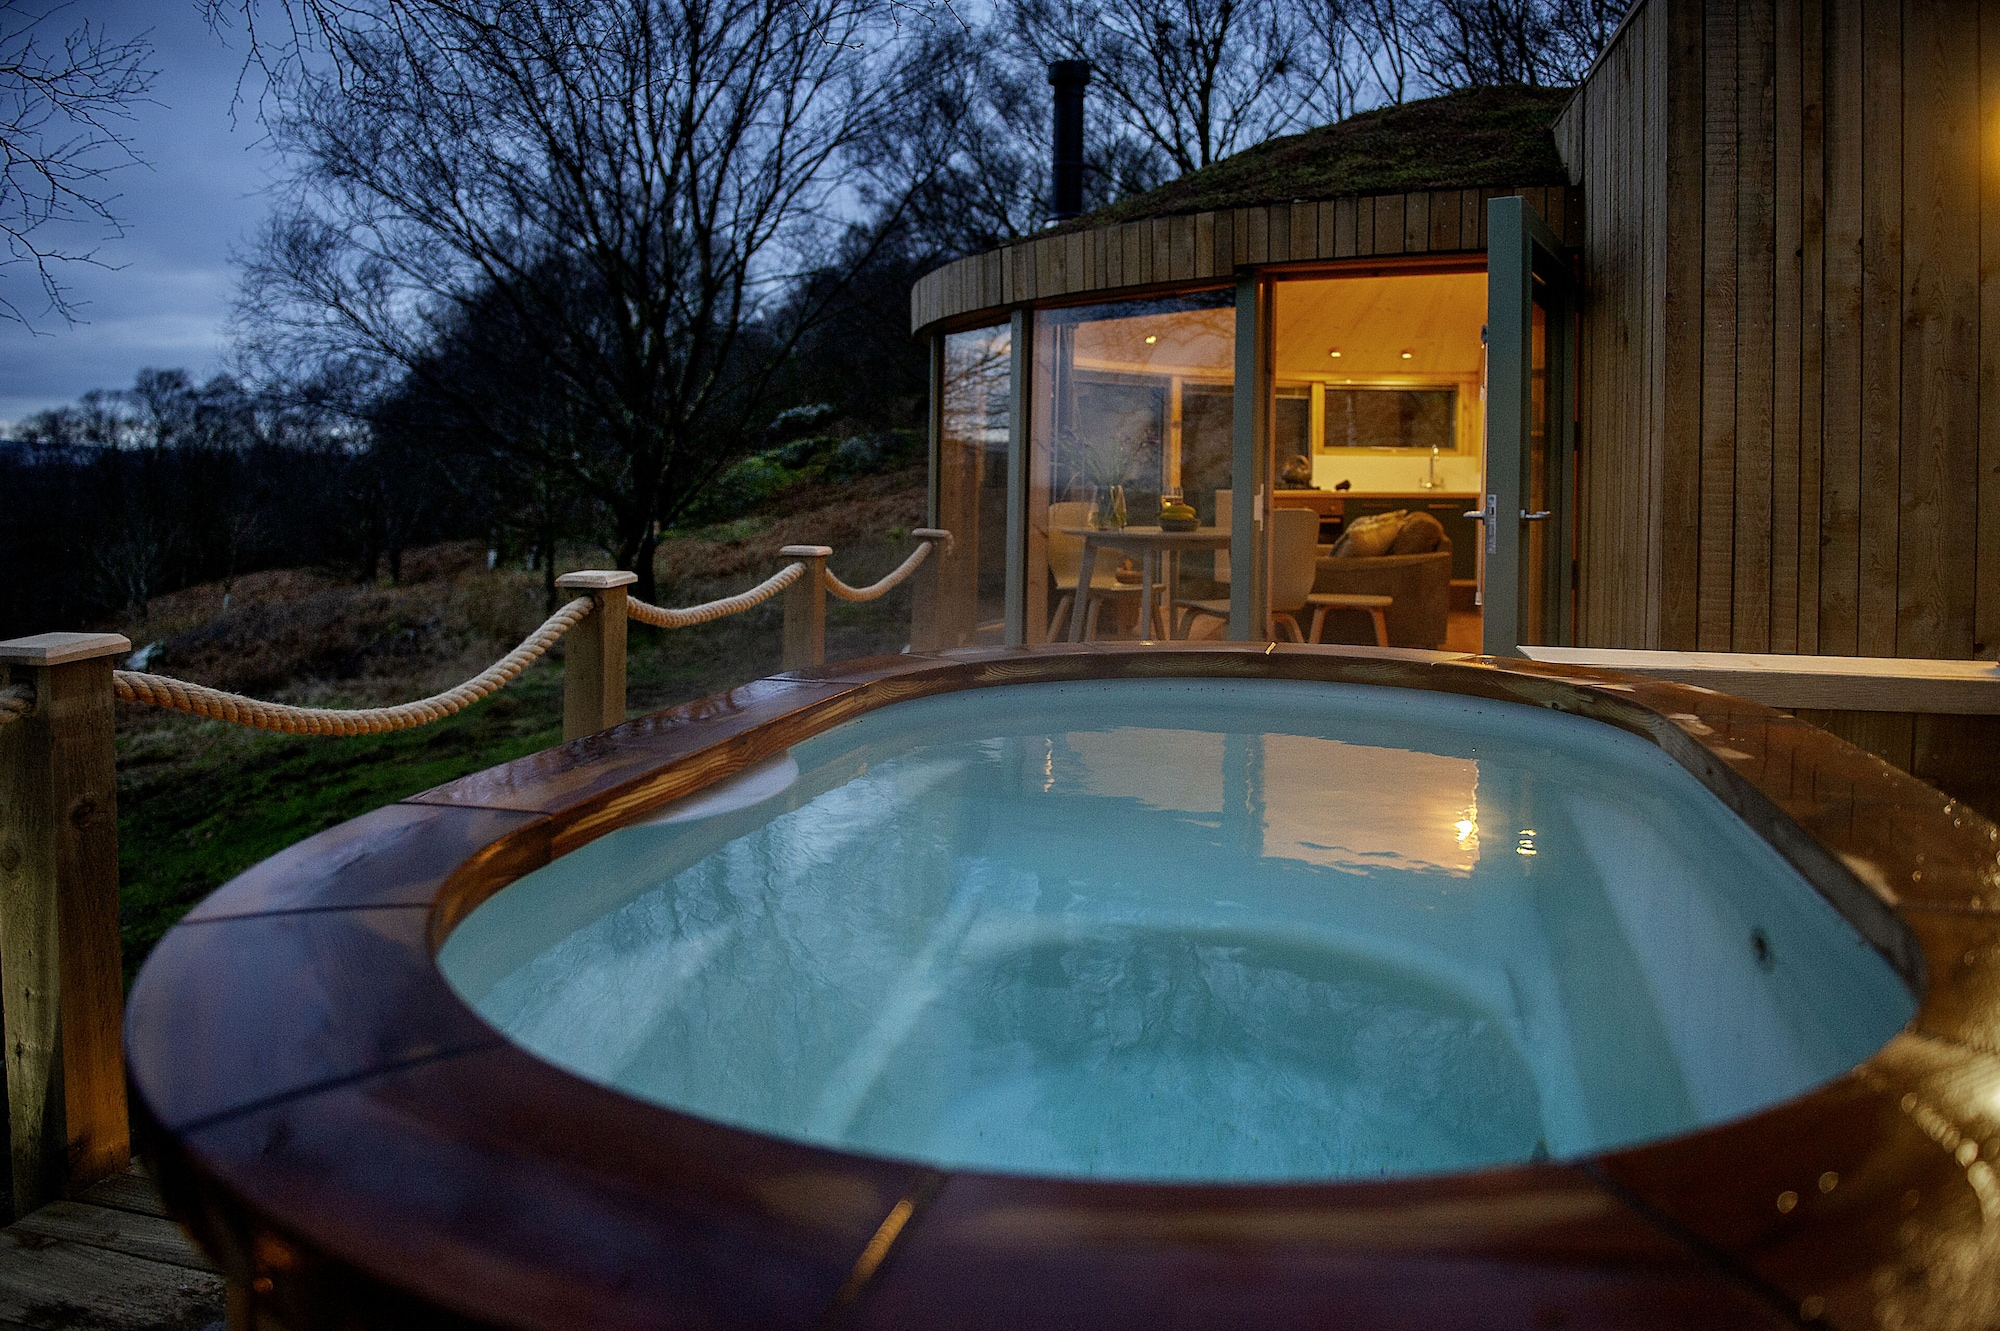 Roundhouse and Hot Tub, East Dunbartonshire